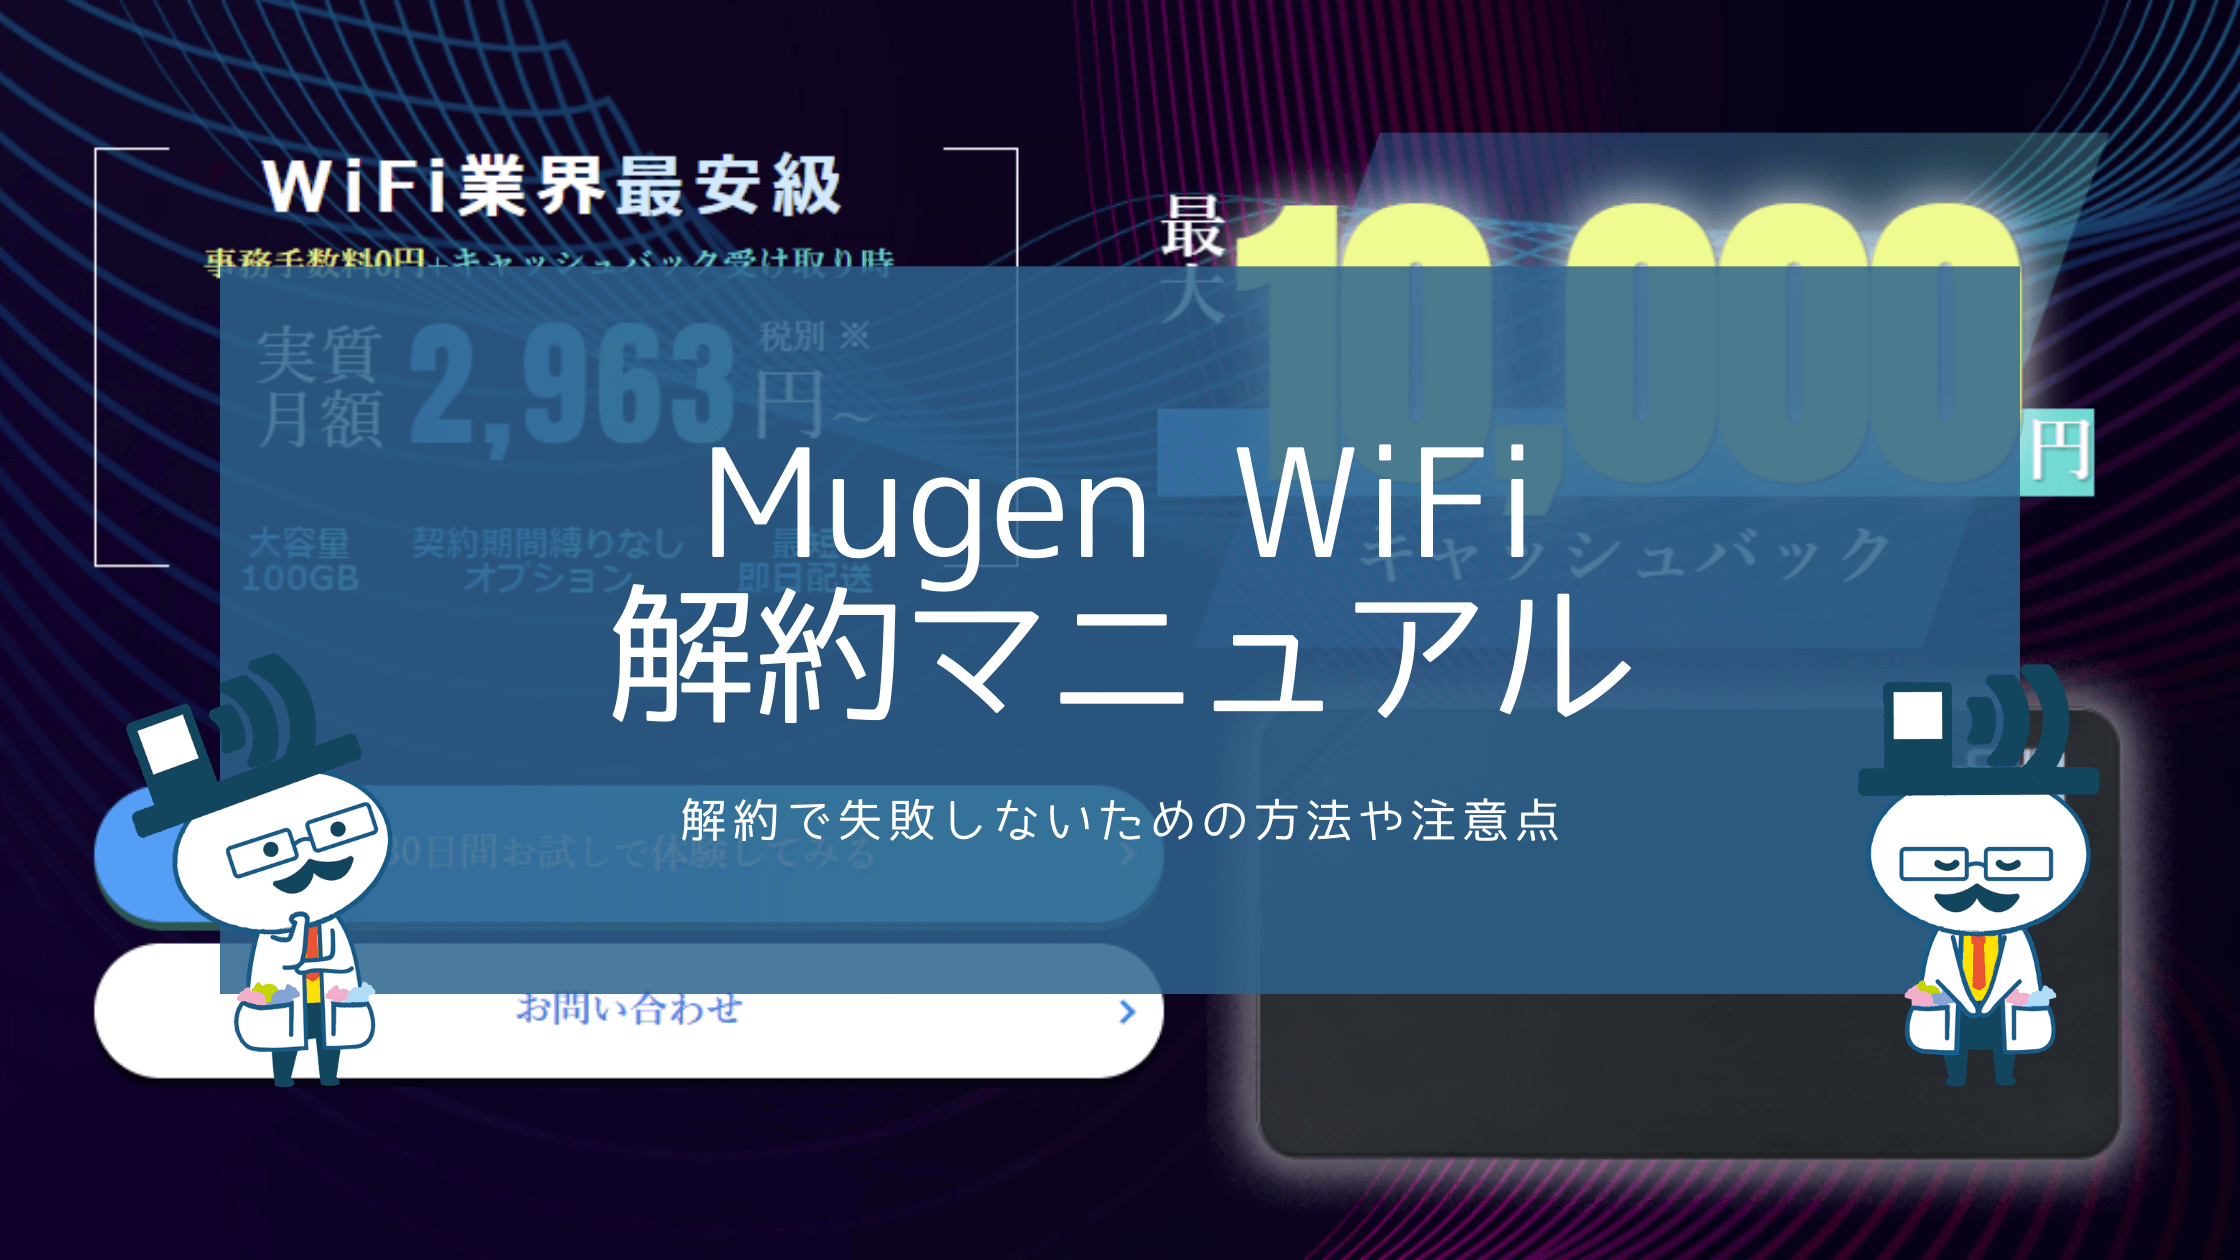 Mugen WiFiの解約方法マニュアル